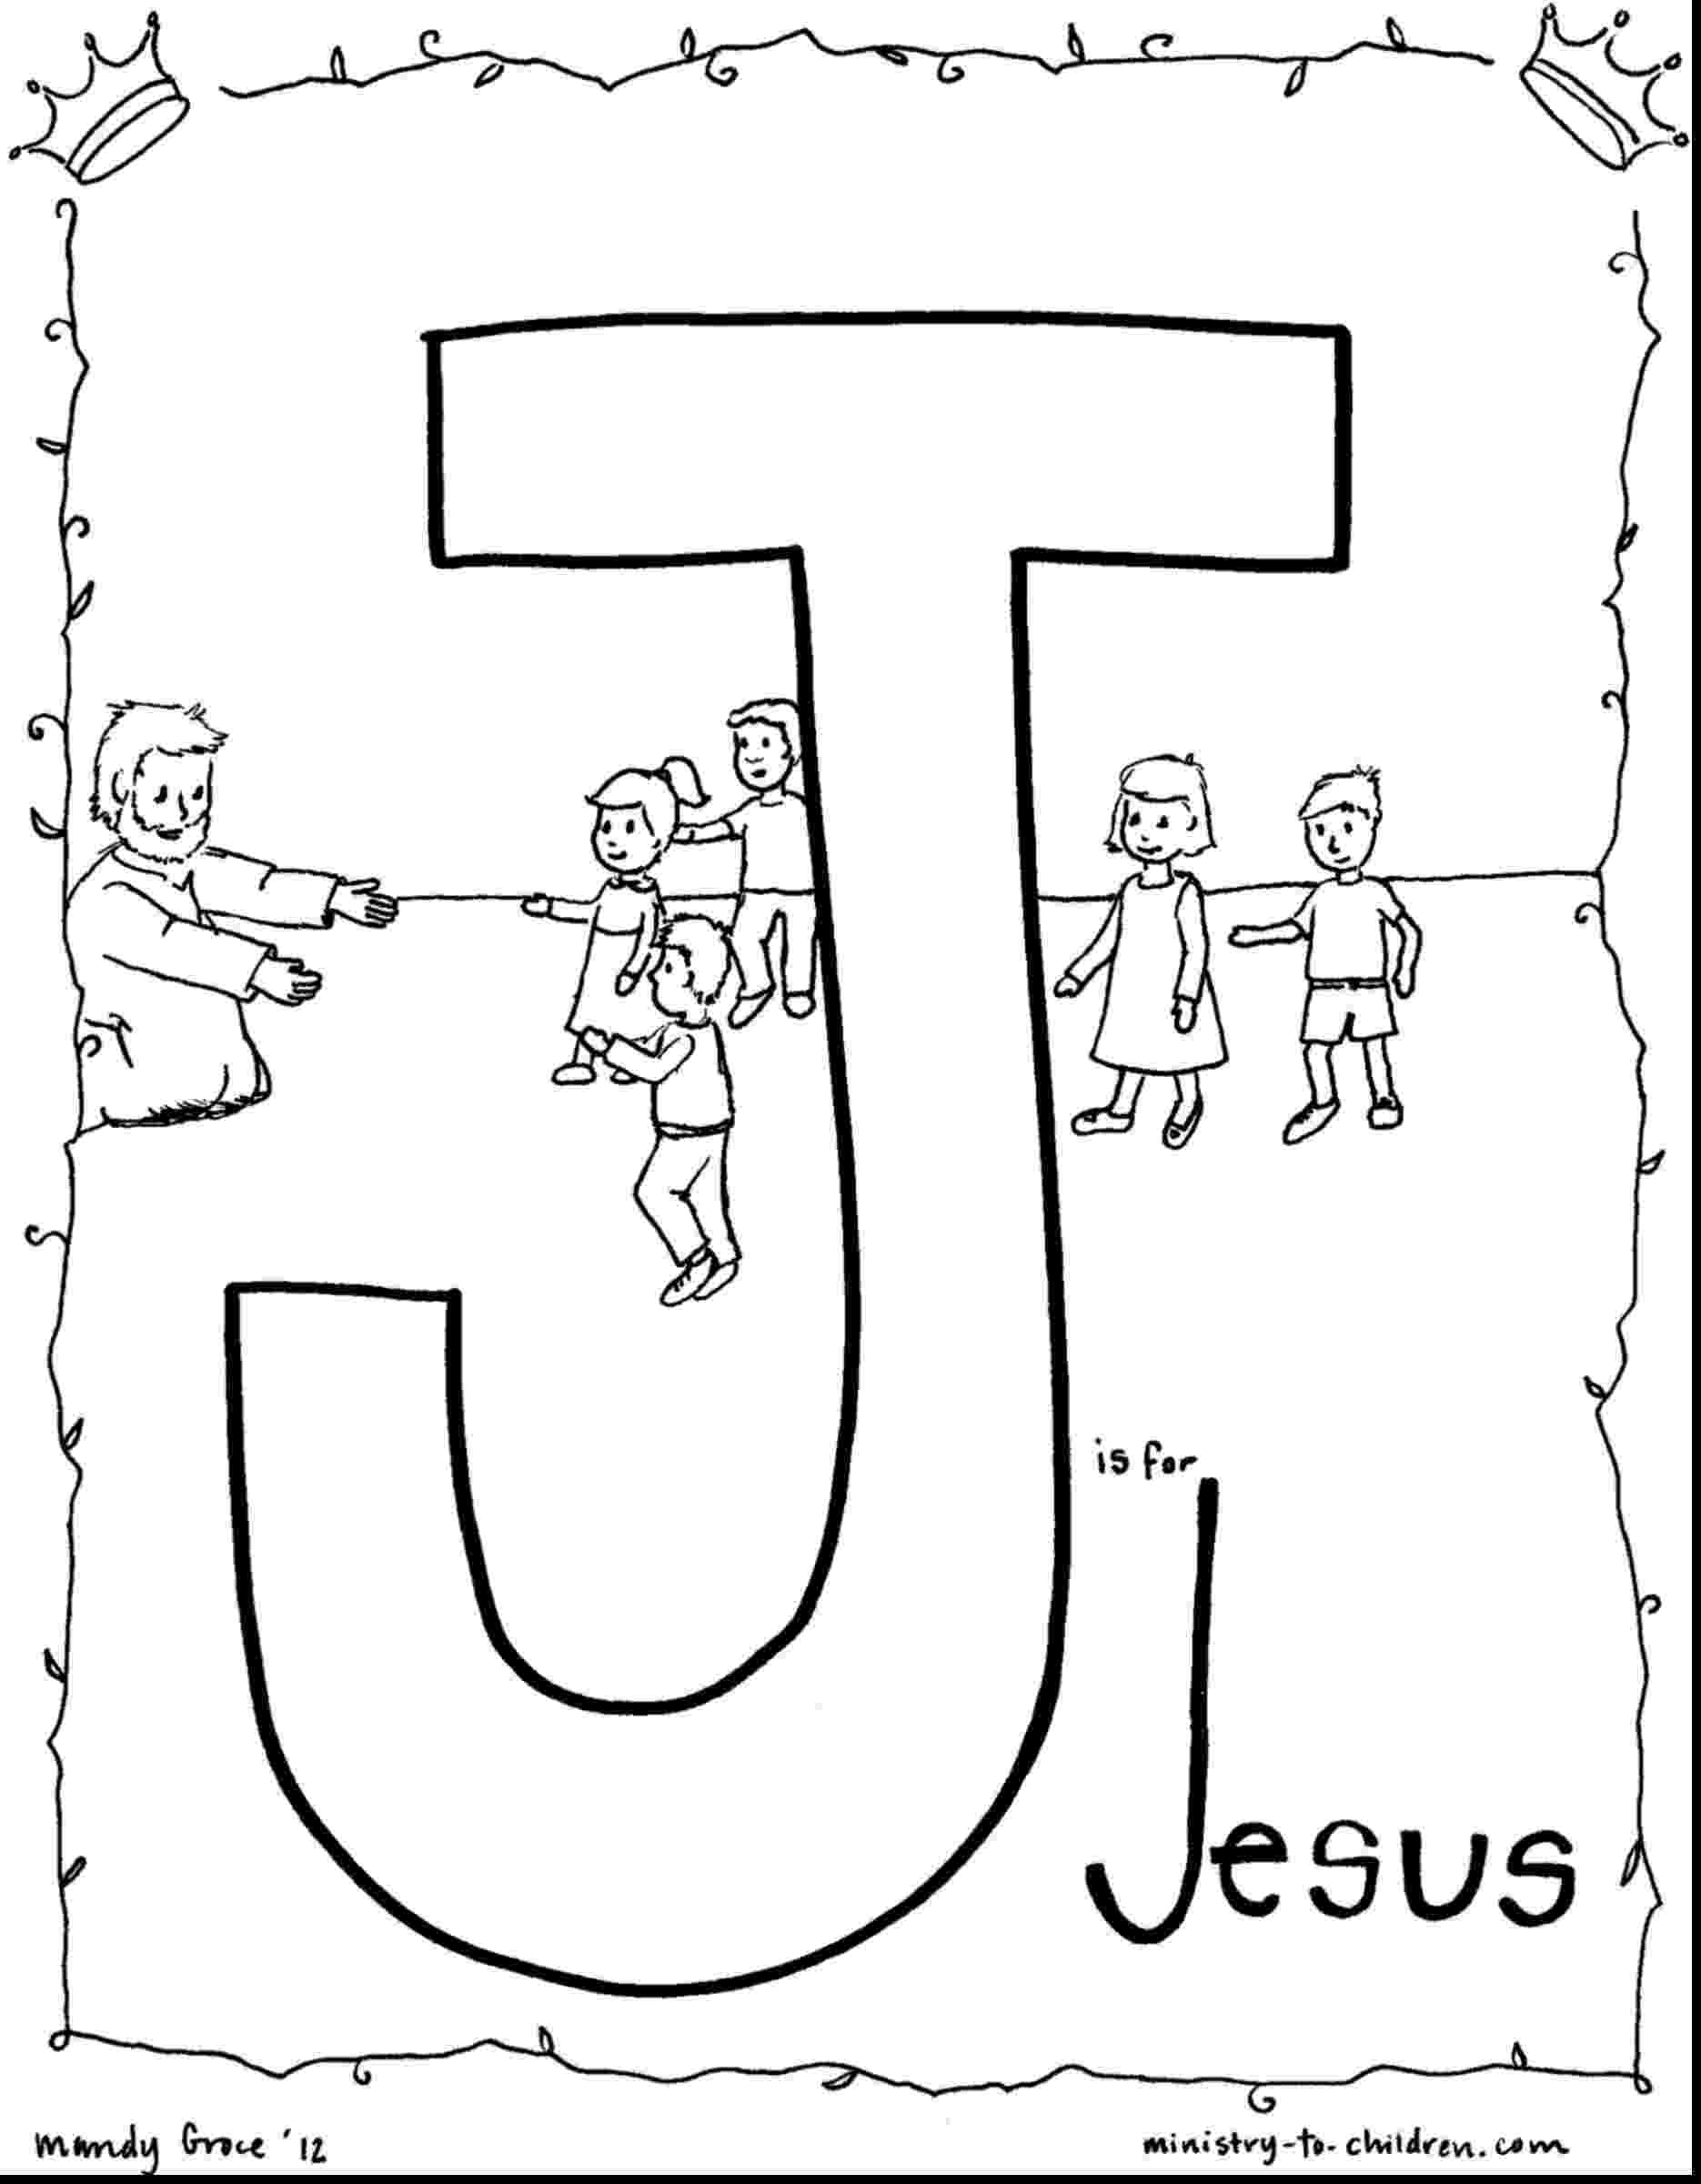 jesus temptation coloring sheet jesus temptation coloring page at getcoloringscom free sheet temptation coloring jesus